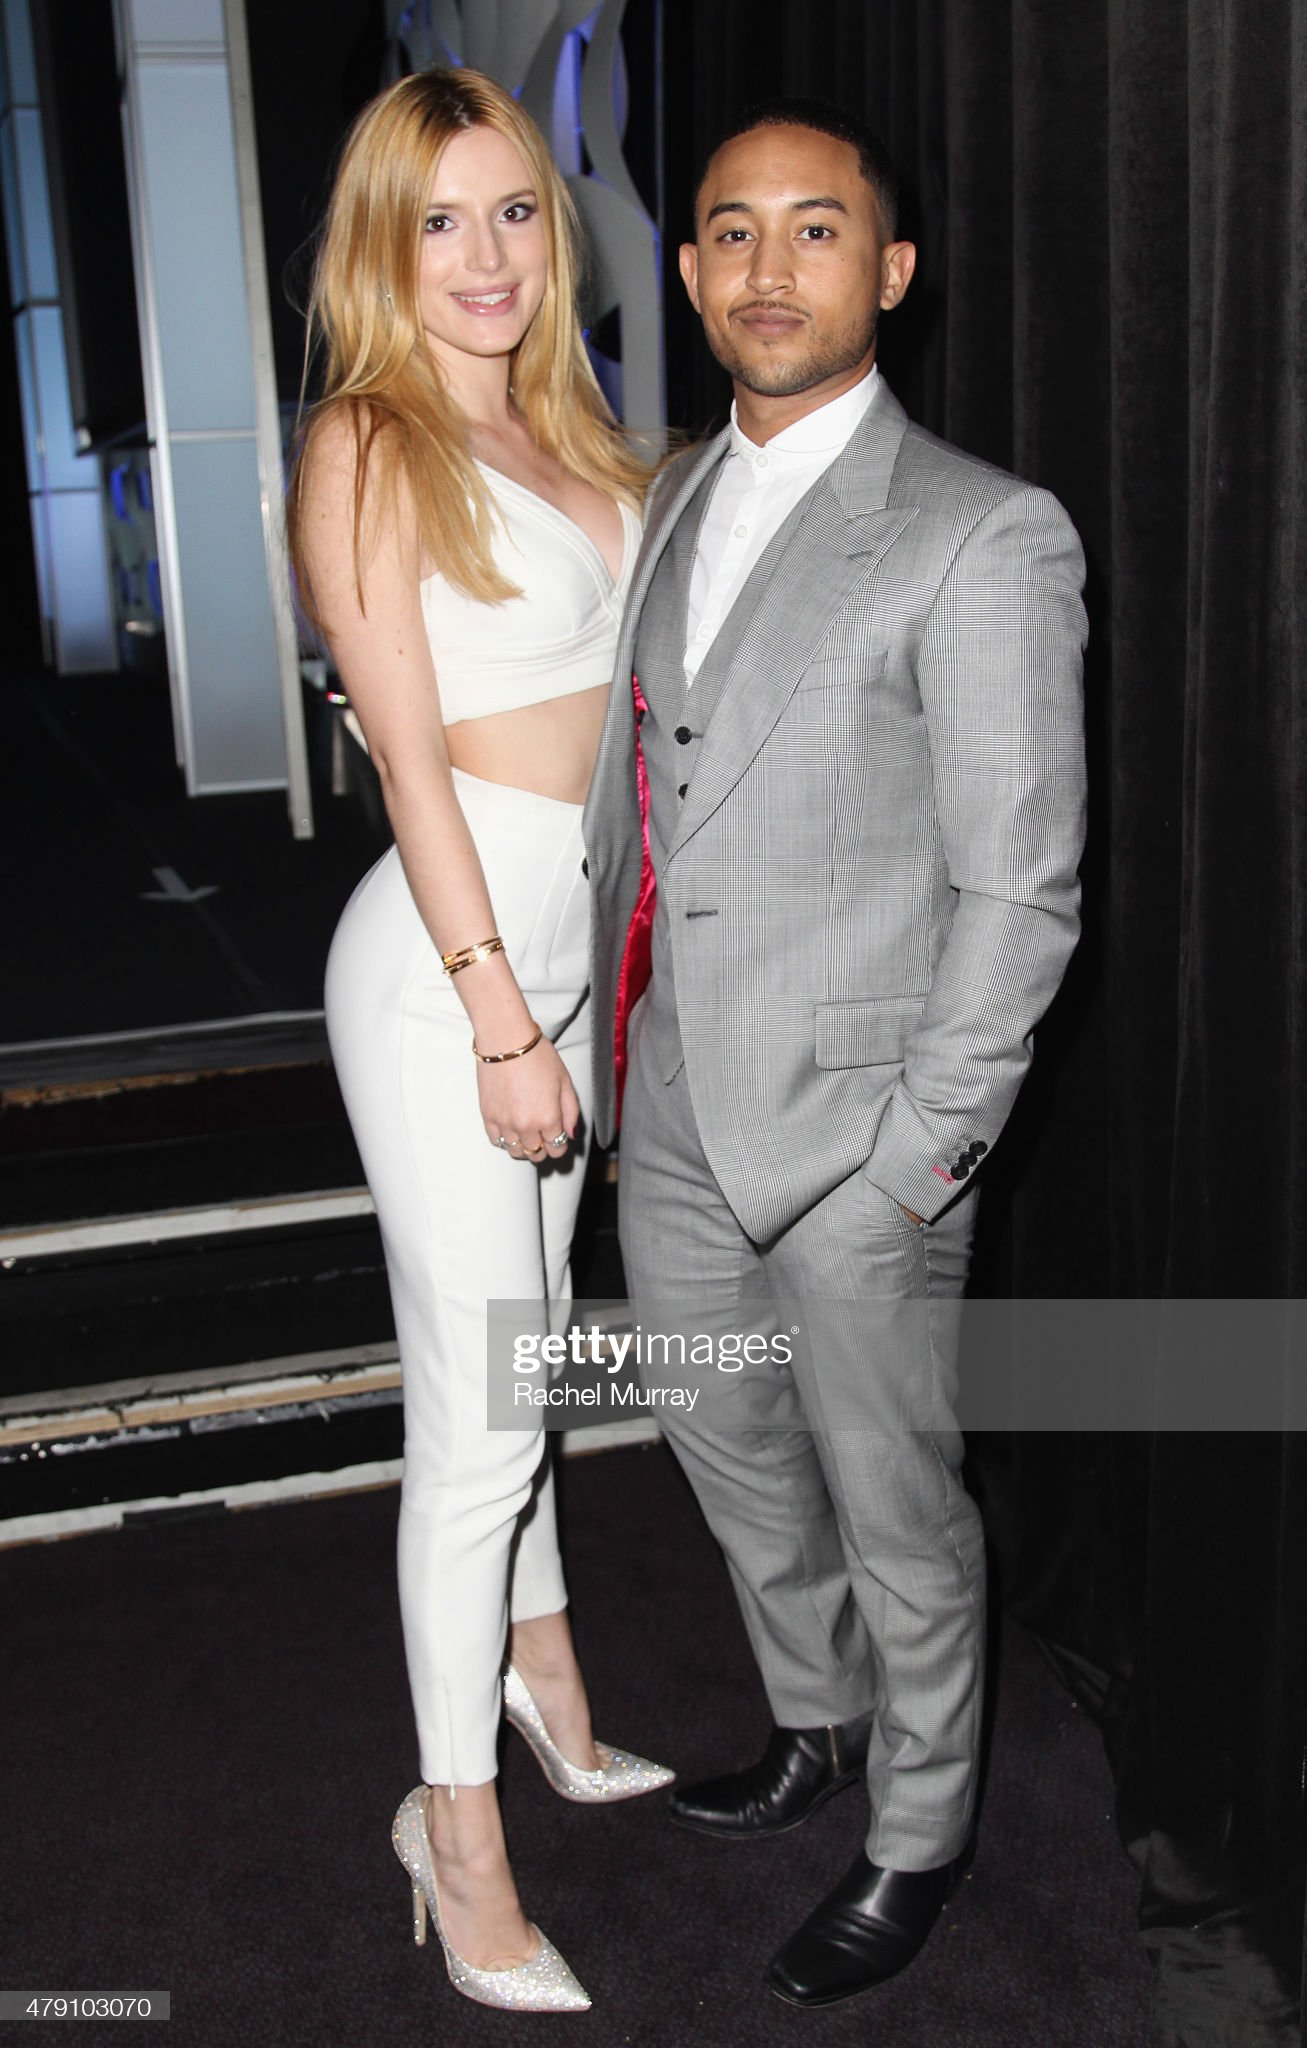 ¿Cuánto mide Bella Thorne? - Real height Actors-bella-thorne-and-tahj-mowry-attend-the-6th-annual-thirst-gala-picture-id479103070?s=2048x2048